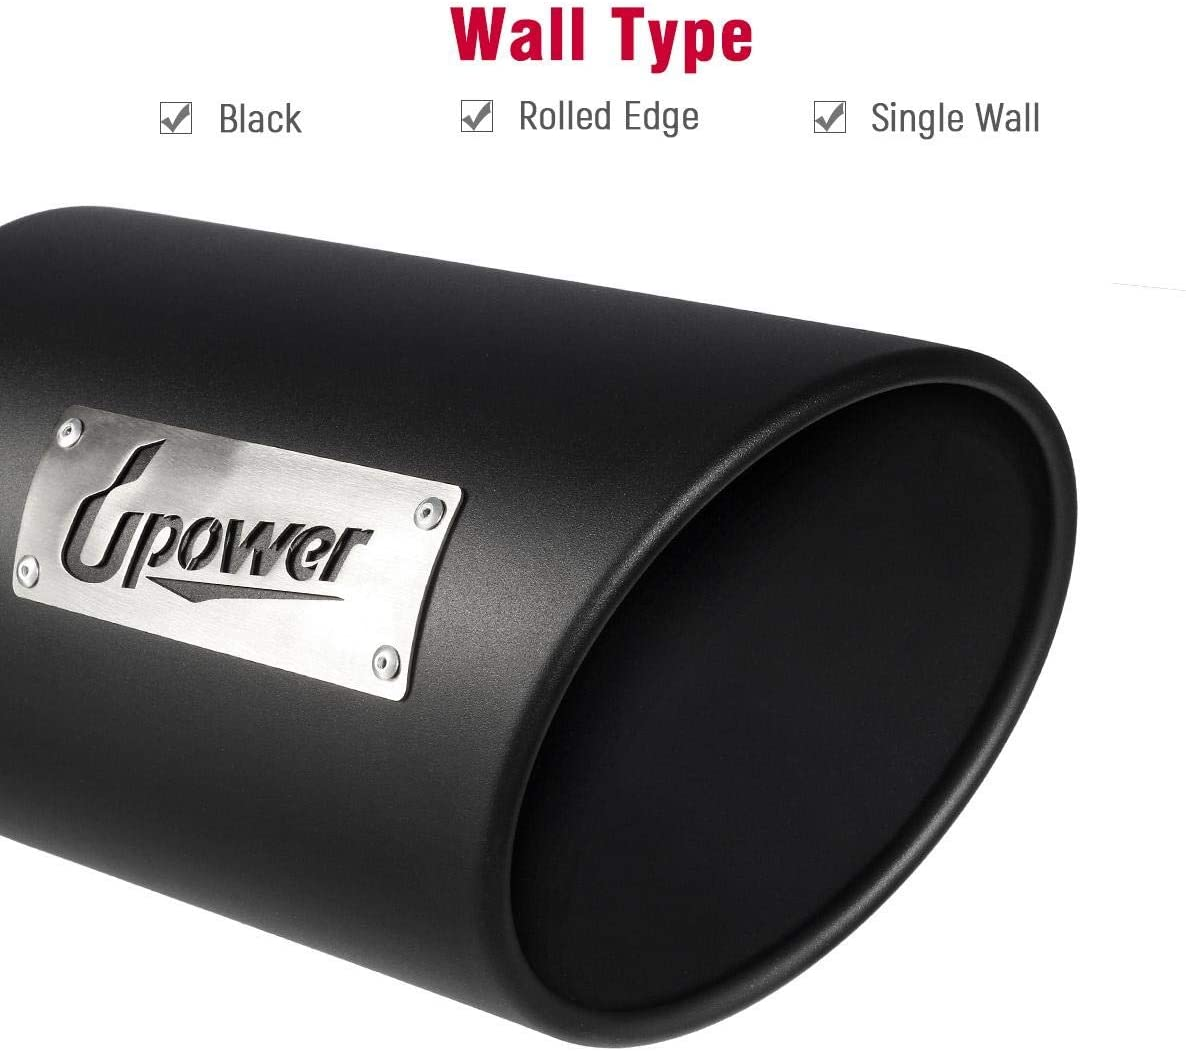 Upower Exhaust Tip 2.5 Inlet 4 Outlet 12 Long Stainless Steel Rolled Edge Weld On Universal Powder Coated Black Truck Tailpipe